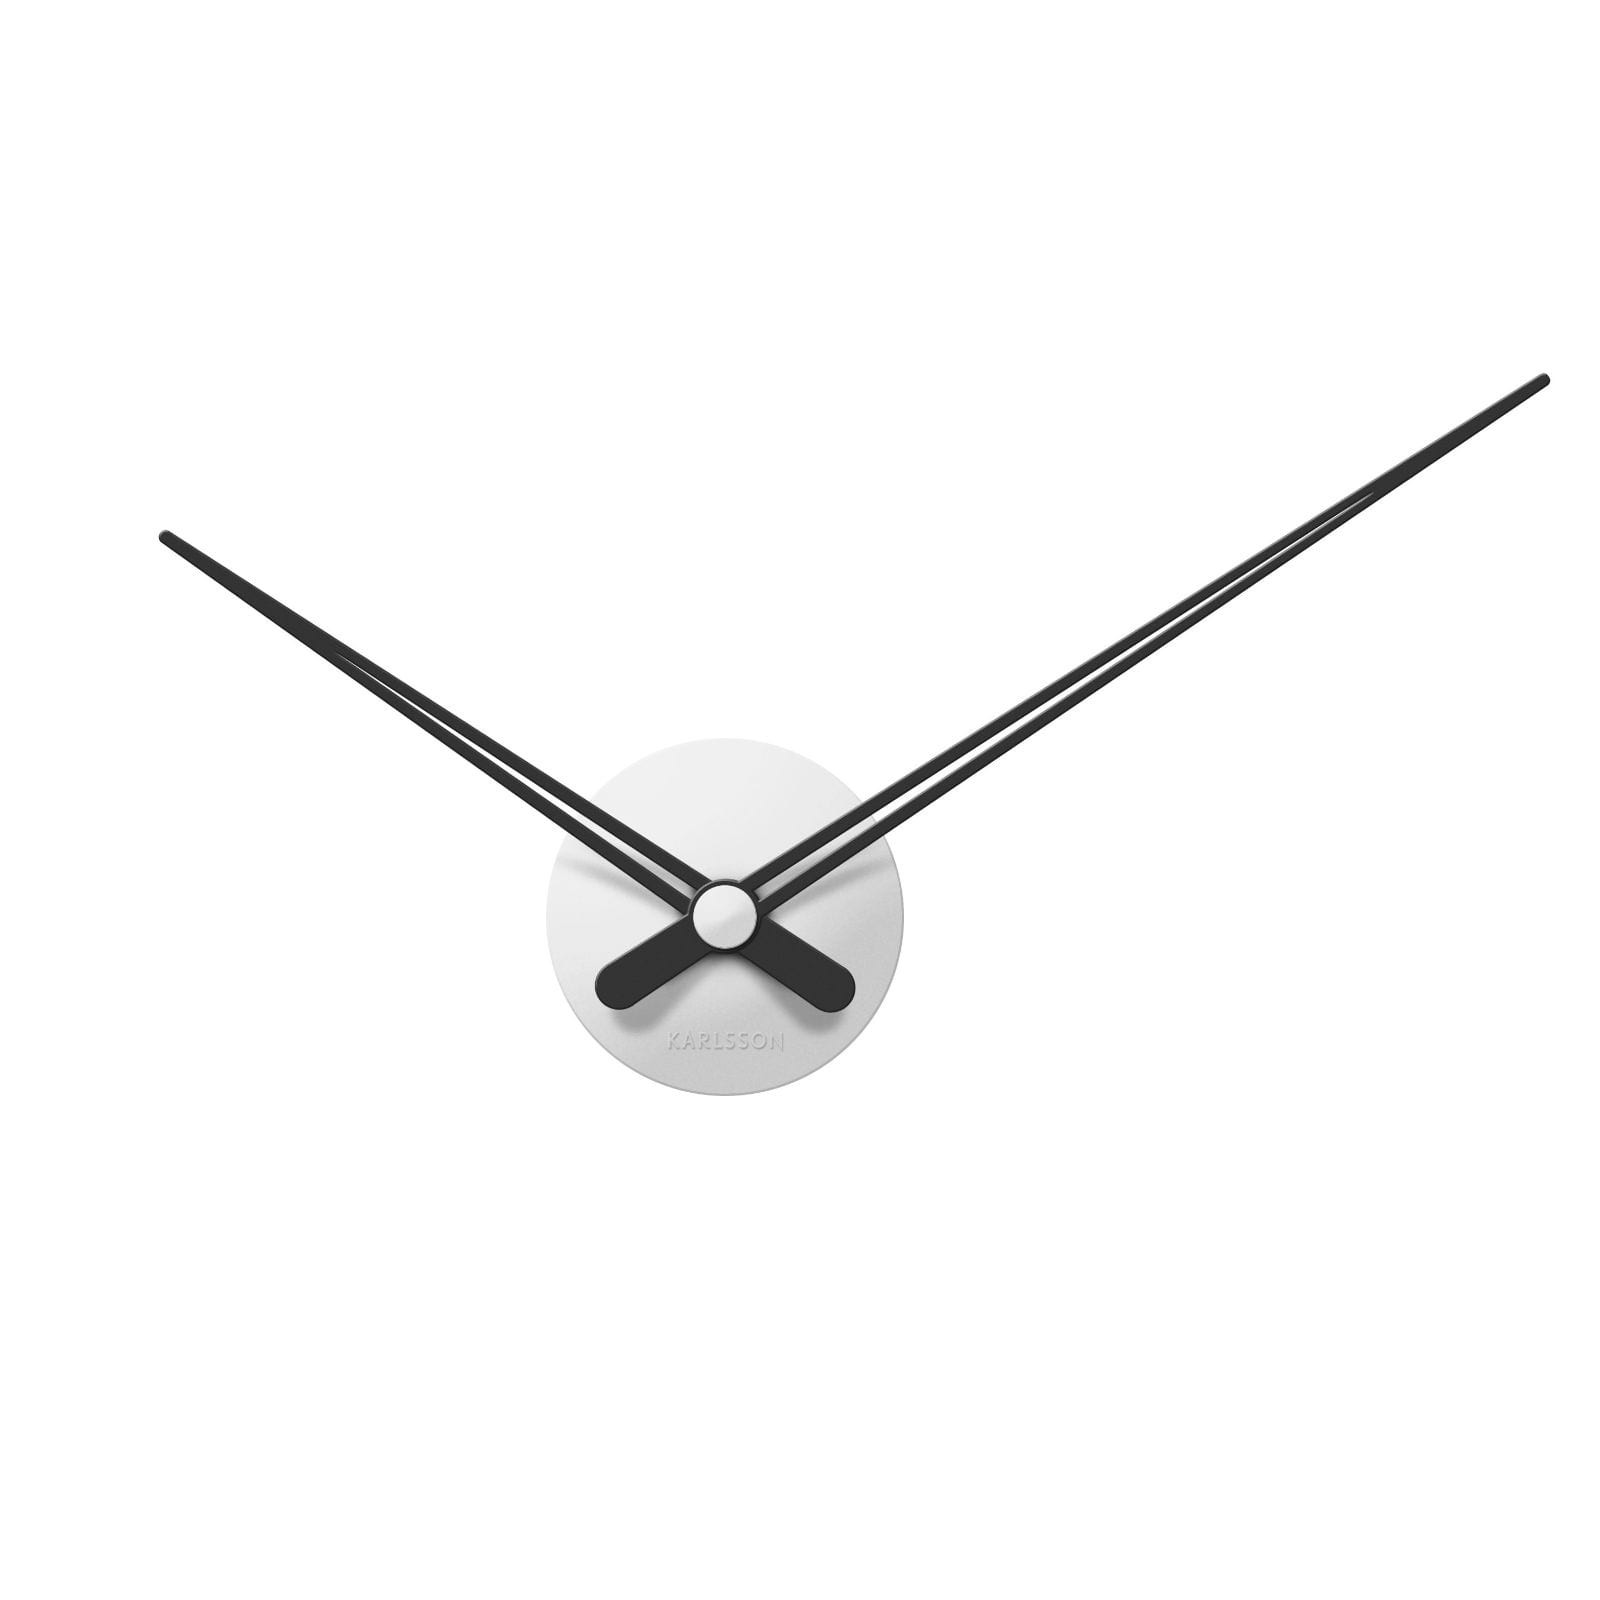 LBT Mini Sharp Wall Clock (White) - Karlsson